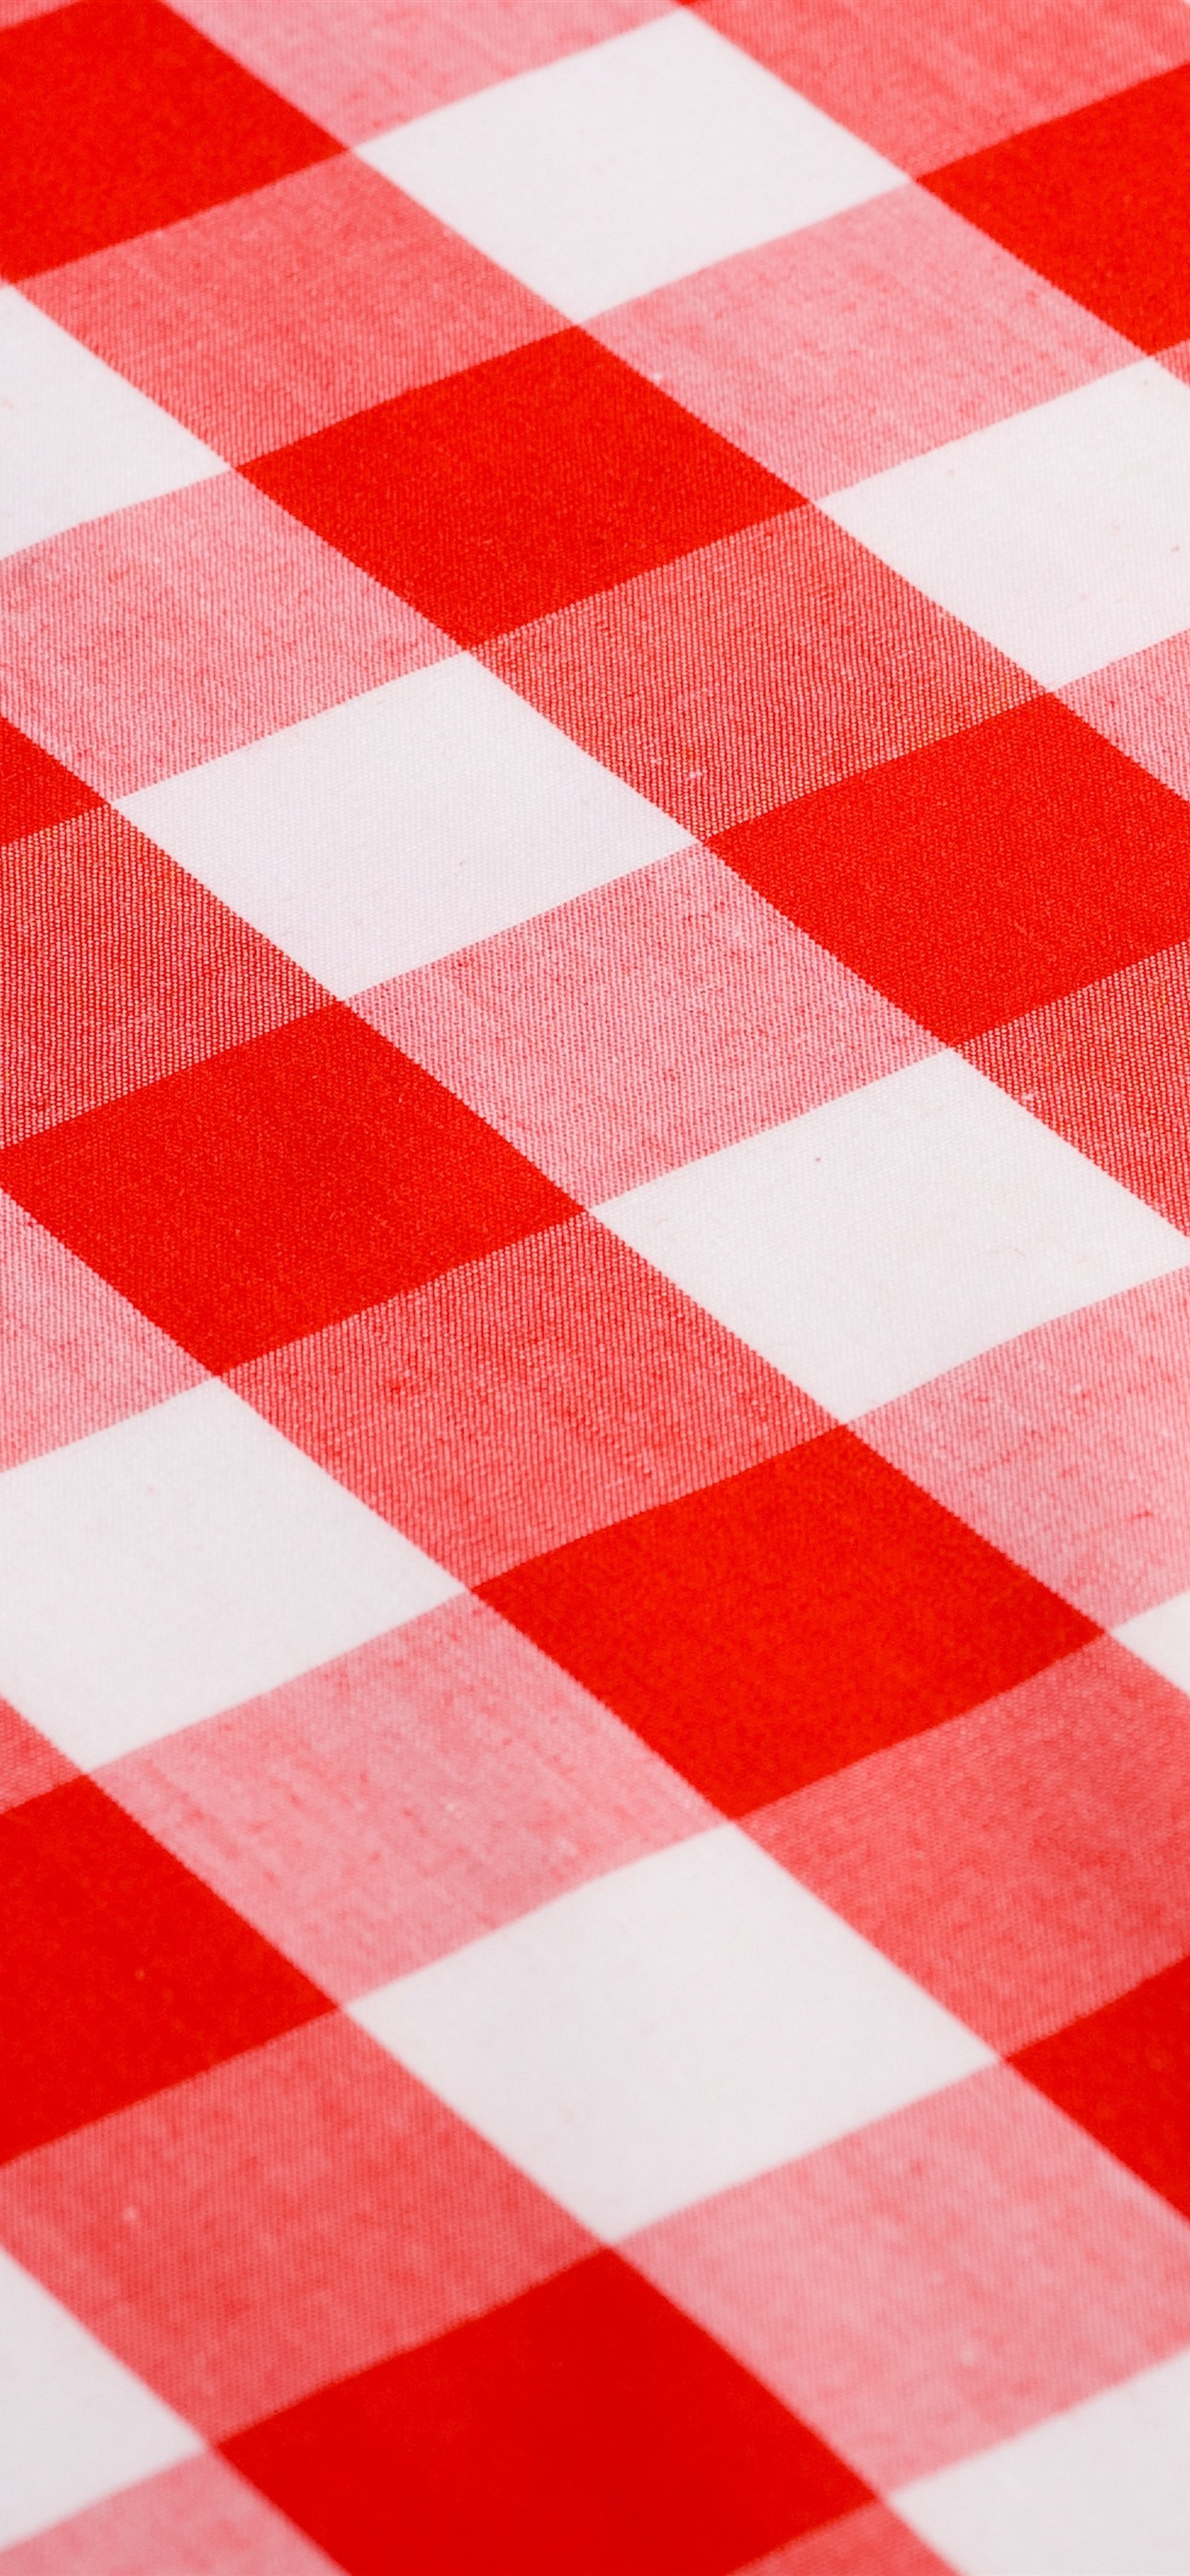 Tablecloth Red And White Stripes 1242x2688 Iphone 11 Pro Xs Max Wallpaper Background Picture Image